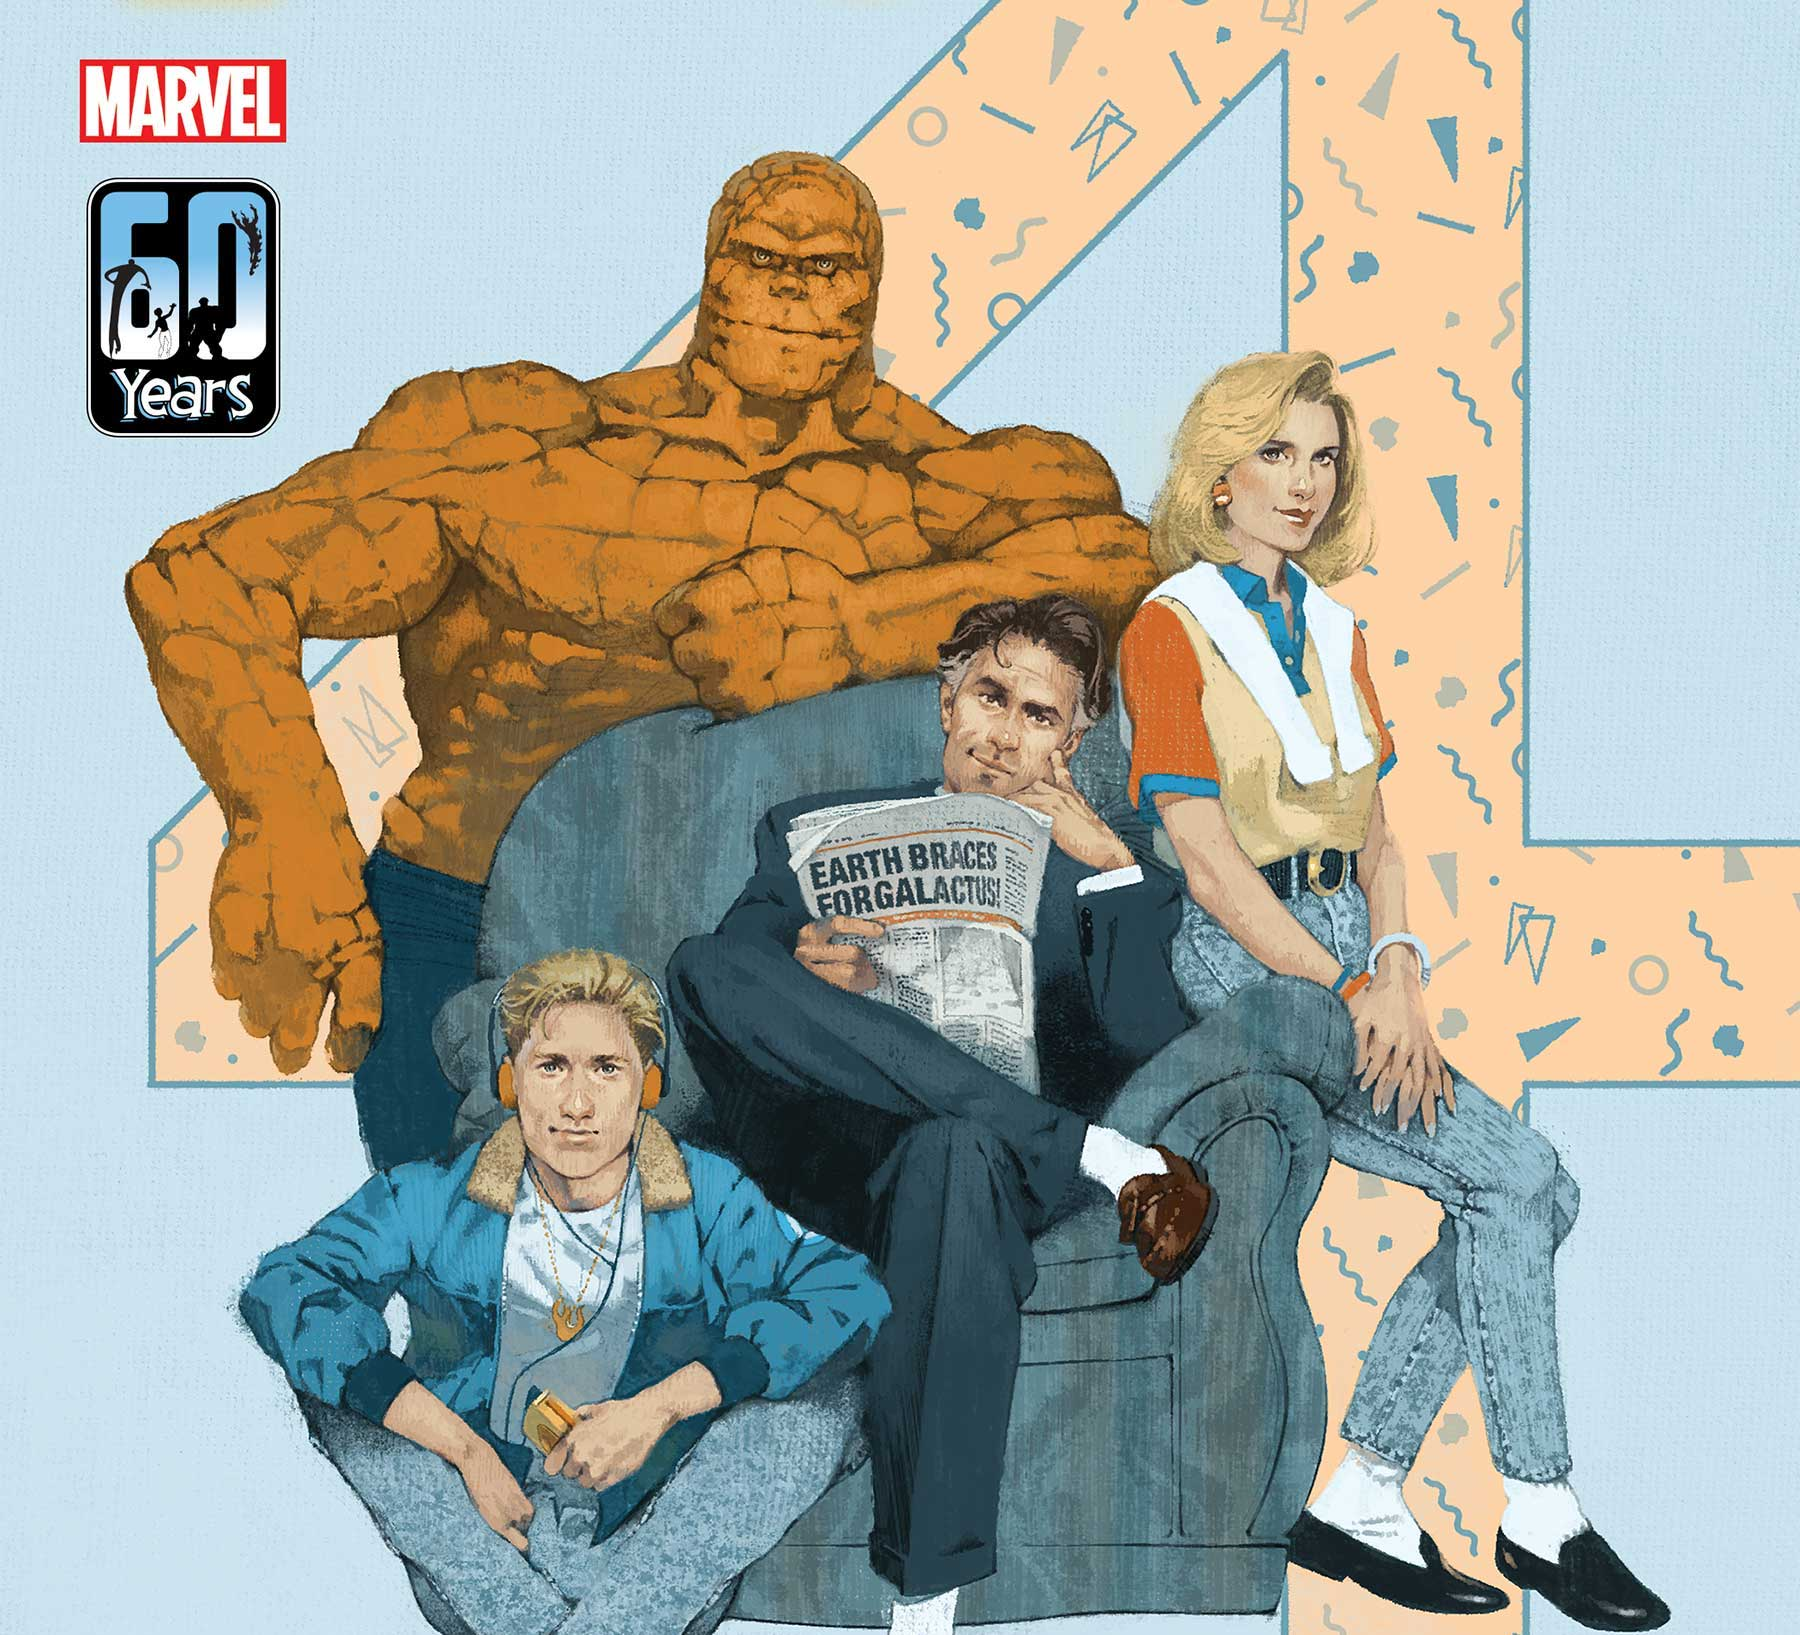 EXCLUSIVE Marvel Preview: Fantastic Four: Life Story #3